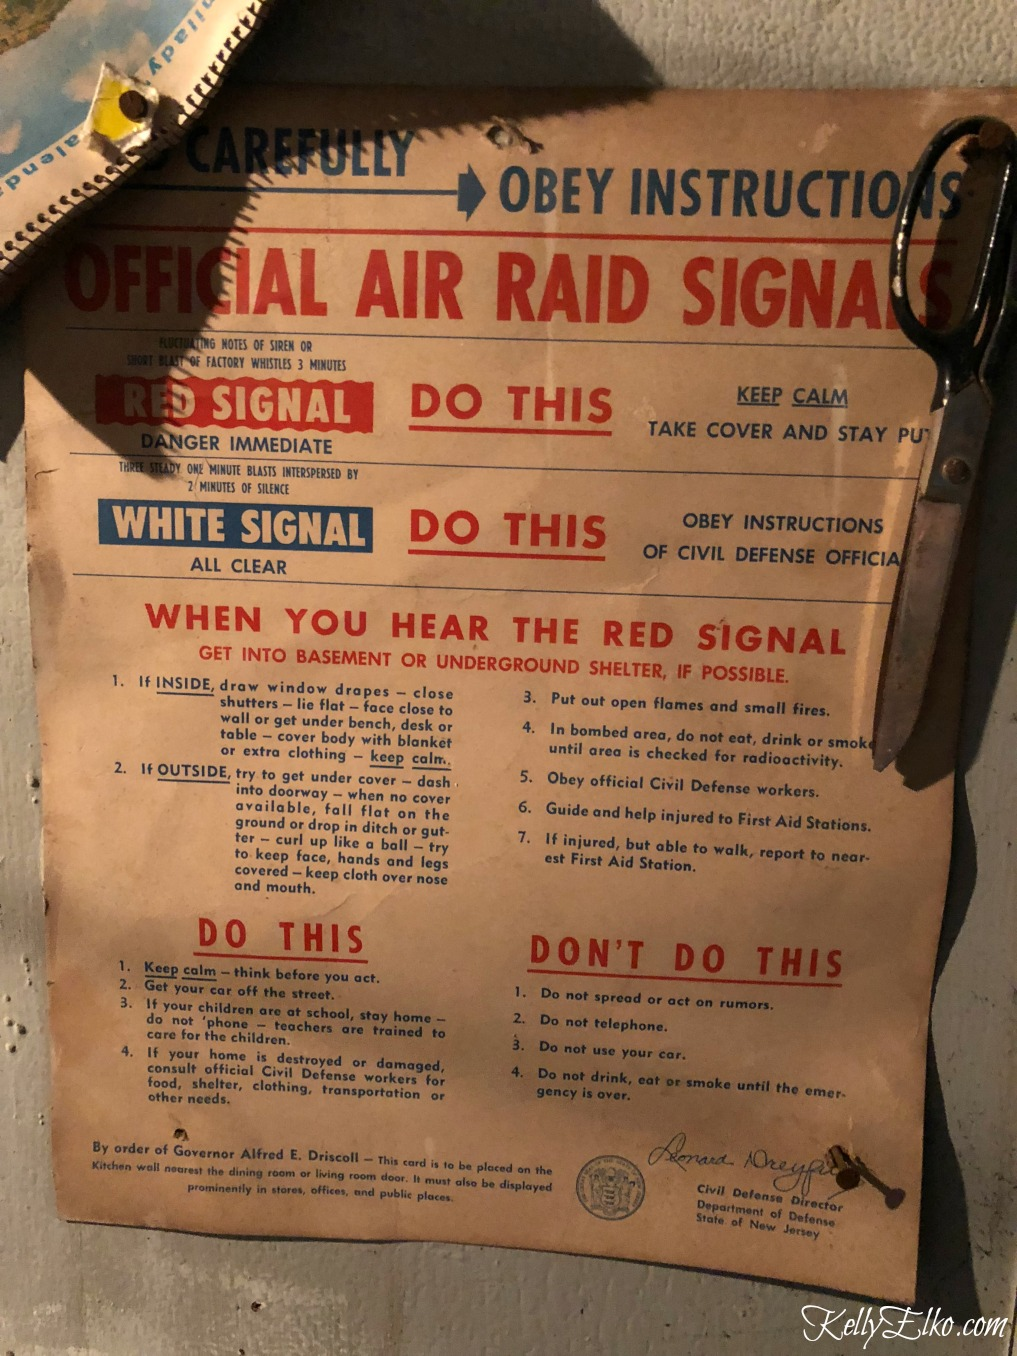 Vintage air raid signal instructions kellyelko.com